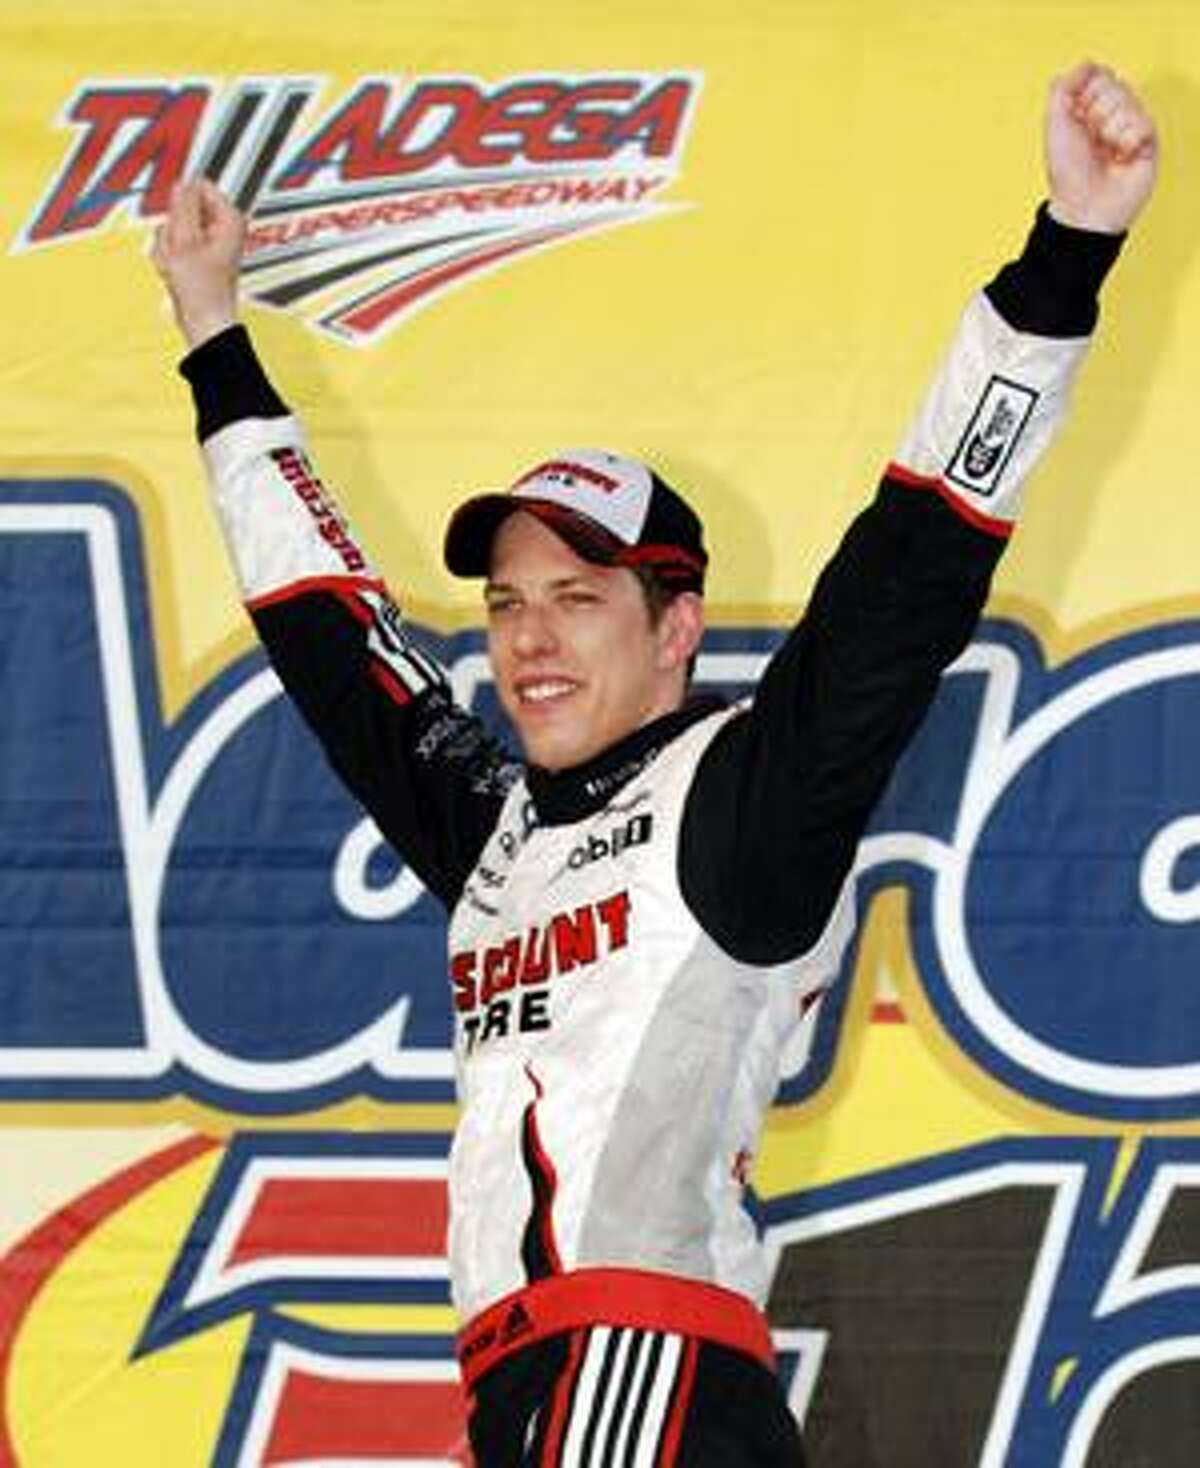 AP Brad Keselowski celebrates after winning the NASCAR Nationwide Series Aaron's 312 auto race at Talladega Superspeedway in Talladega, Ala., Sunday.